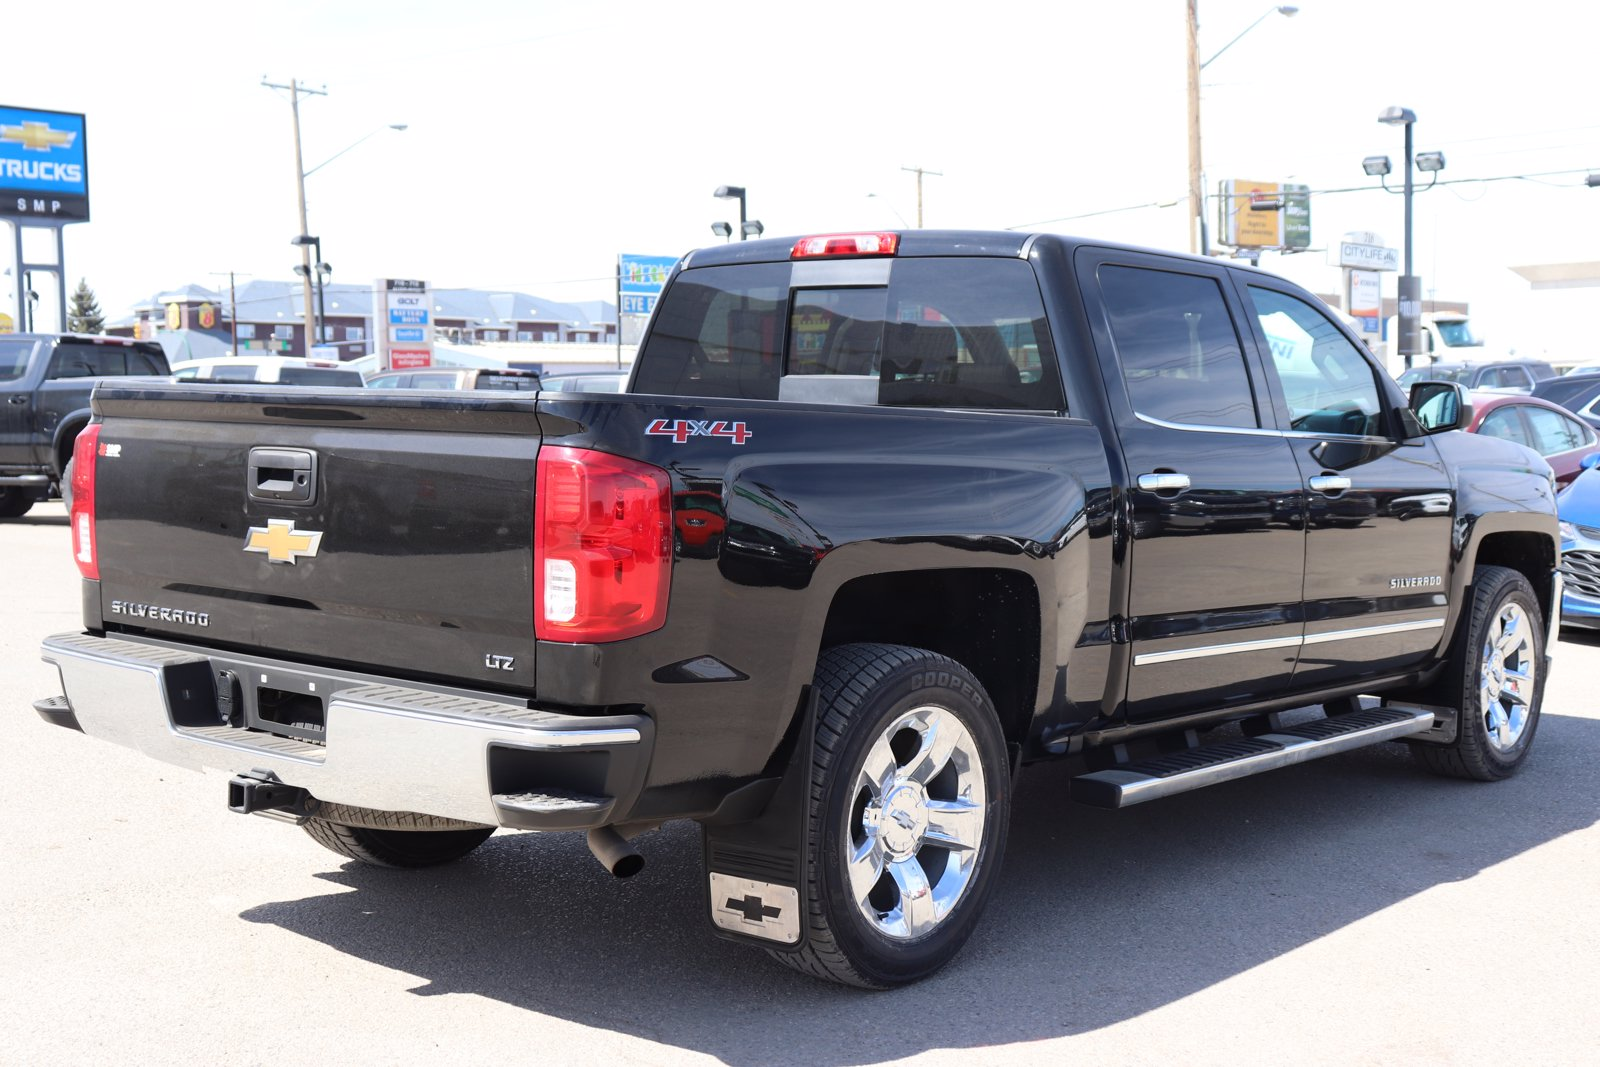 Certified Pre-Owned 2016 Chevrolet Silverado 1500 LTZ - Heated Leather, Rem Start, 20 Wheels, New Tires